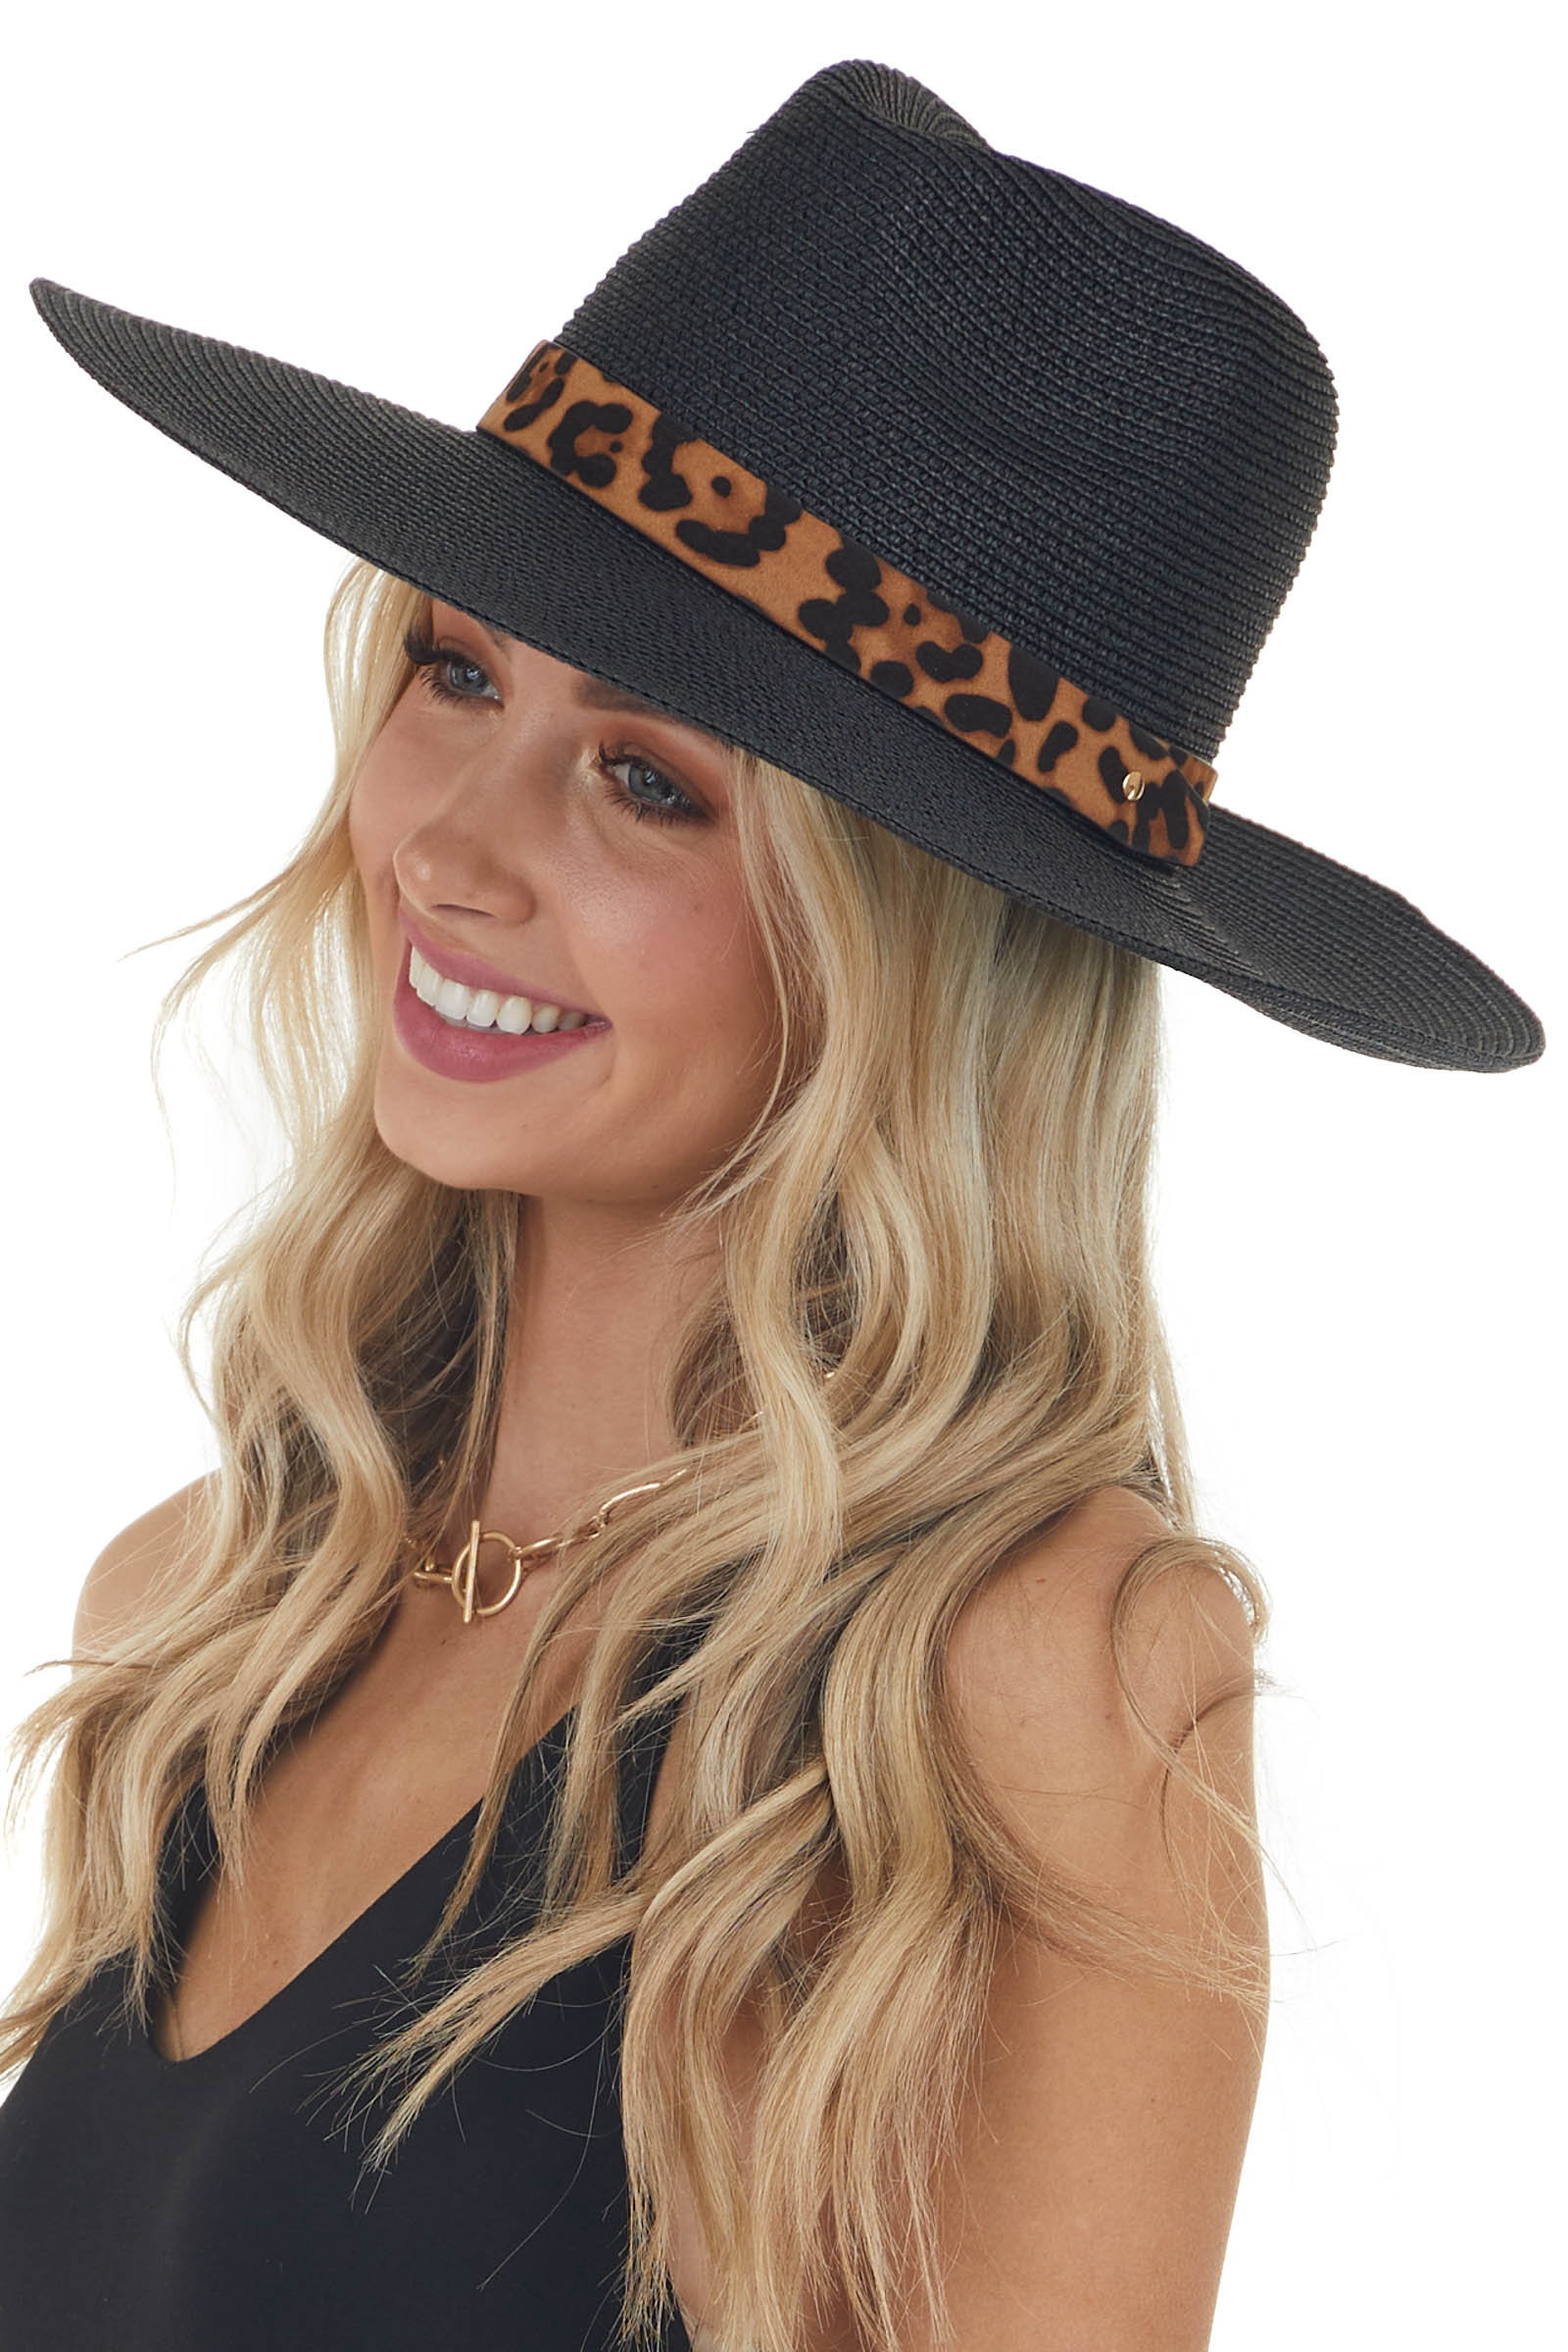 Black Straw Sun Hat with Leopard Print Buckle Detail